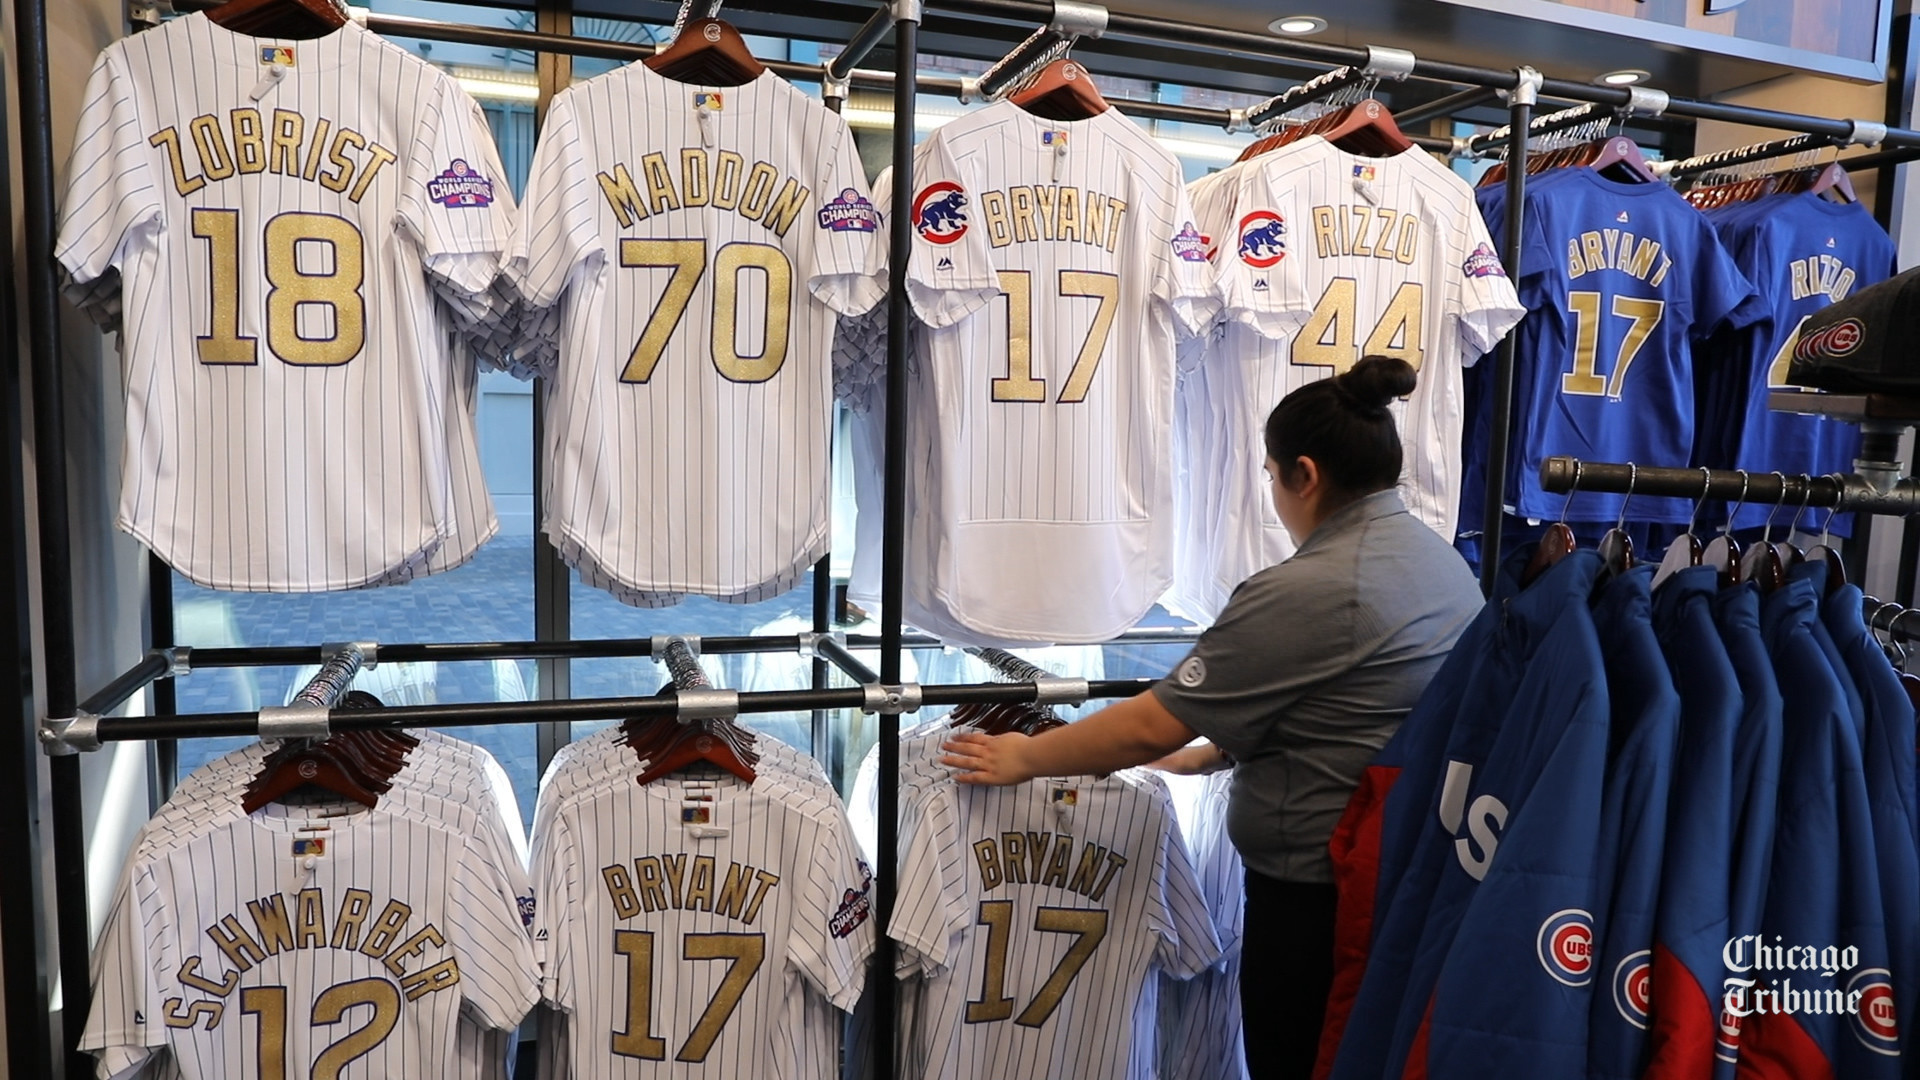 1920x1080 Cubs' flagship Wrigleyville store might be a destination on its own -  Chicago Tribune